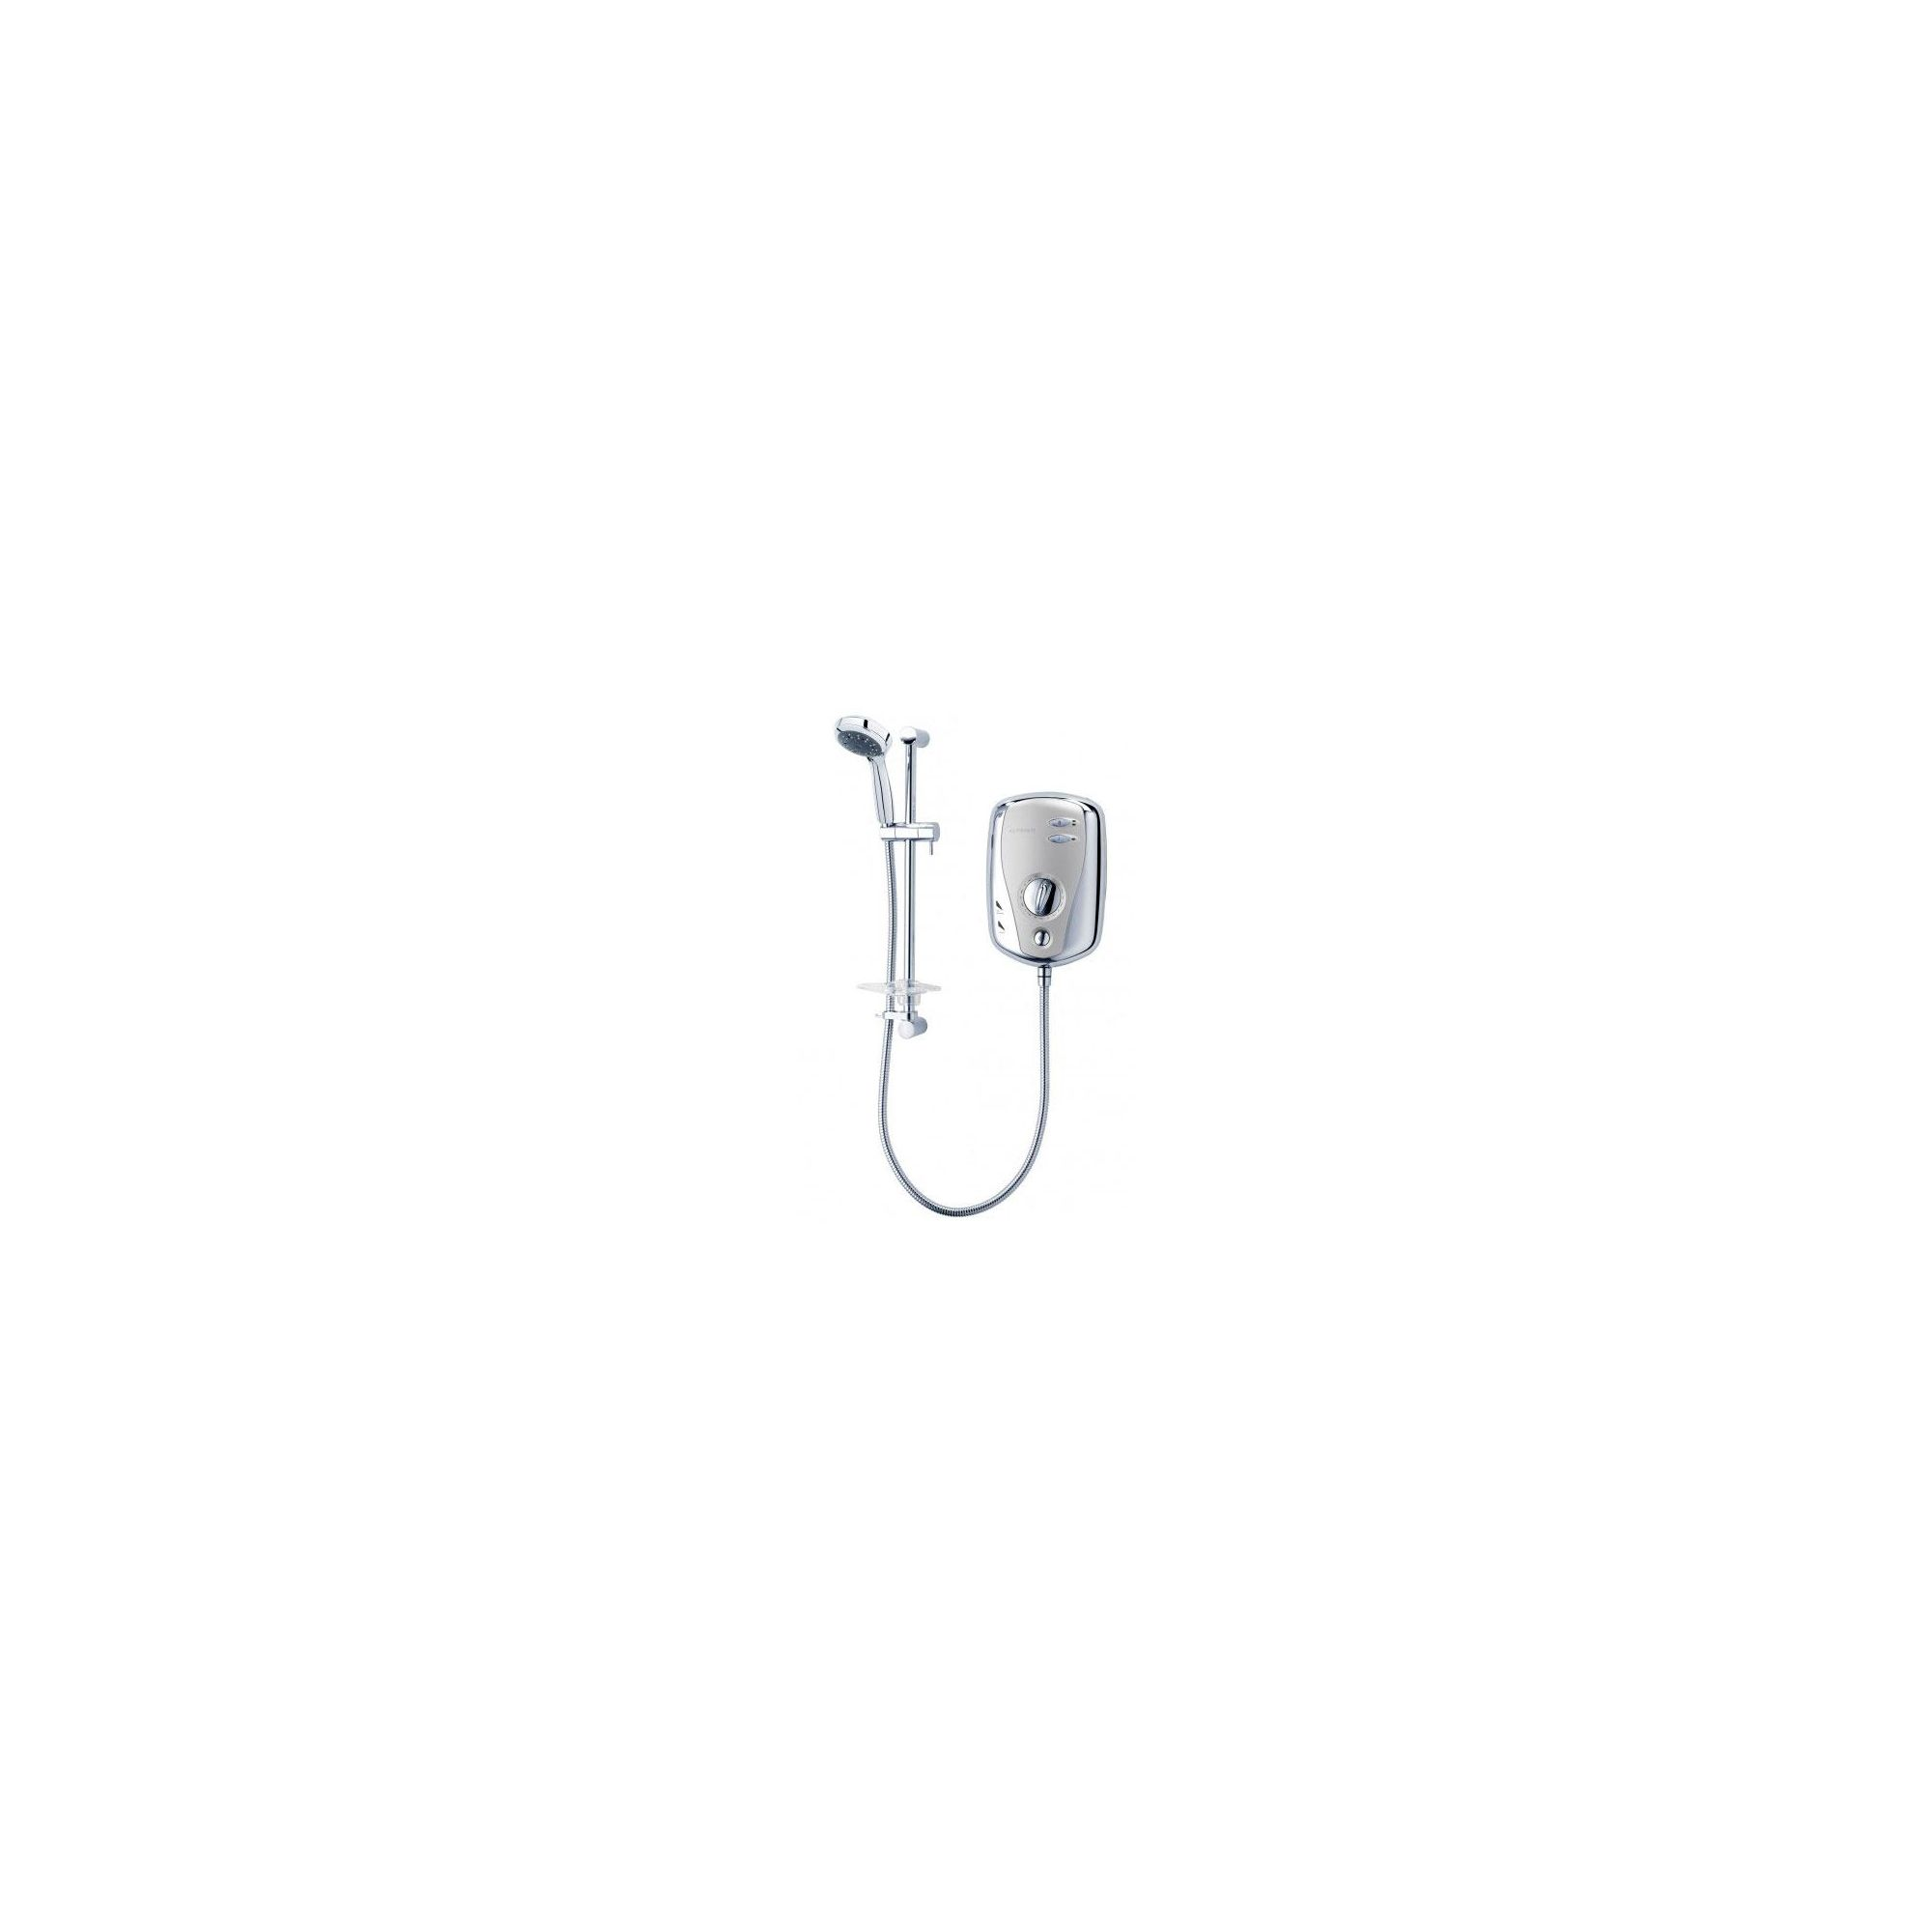 Triton Aspirante XR Electric Shower 10.5kw at Tesco Direct